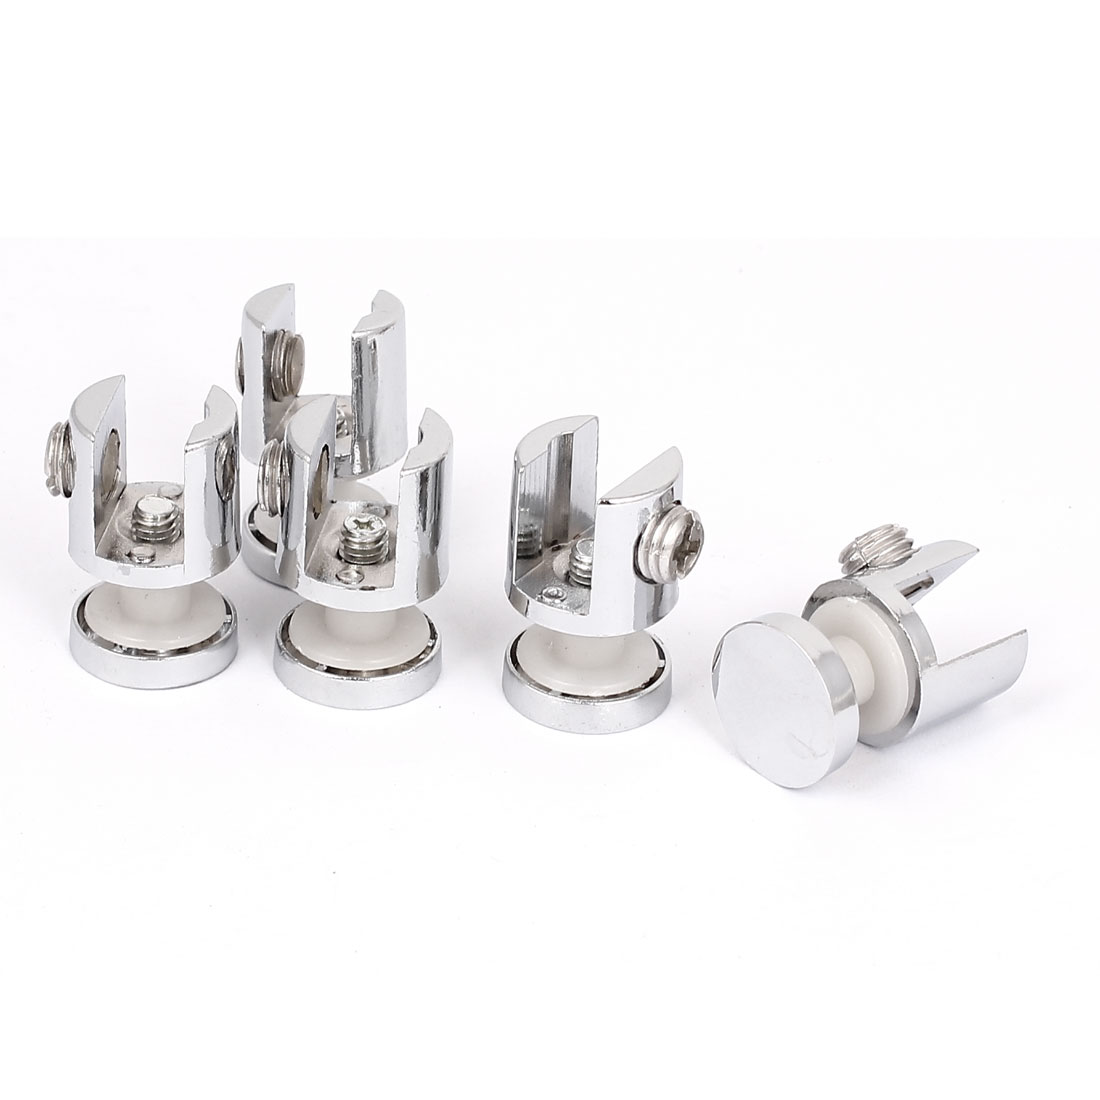 Zinc Alloy 10mm Thick Glass Shelf Board Clip Clamp Holder Support Bracket 5pcs